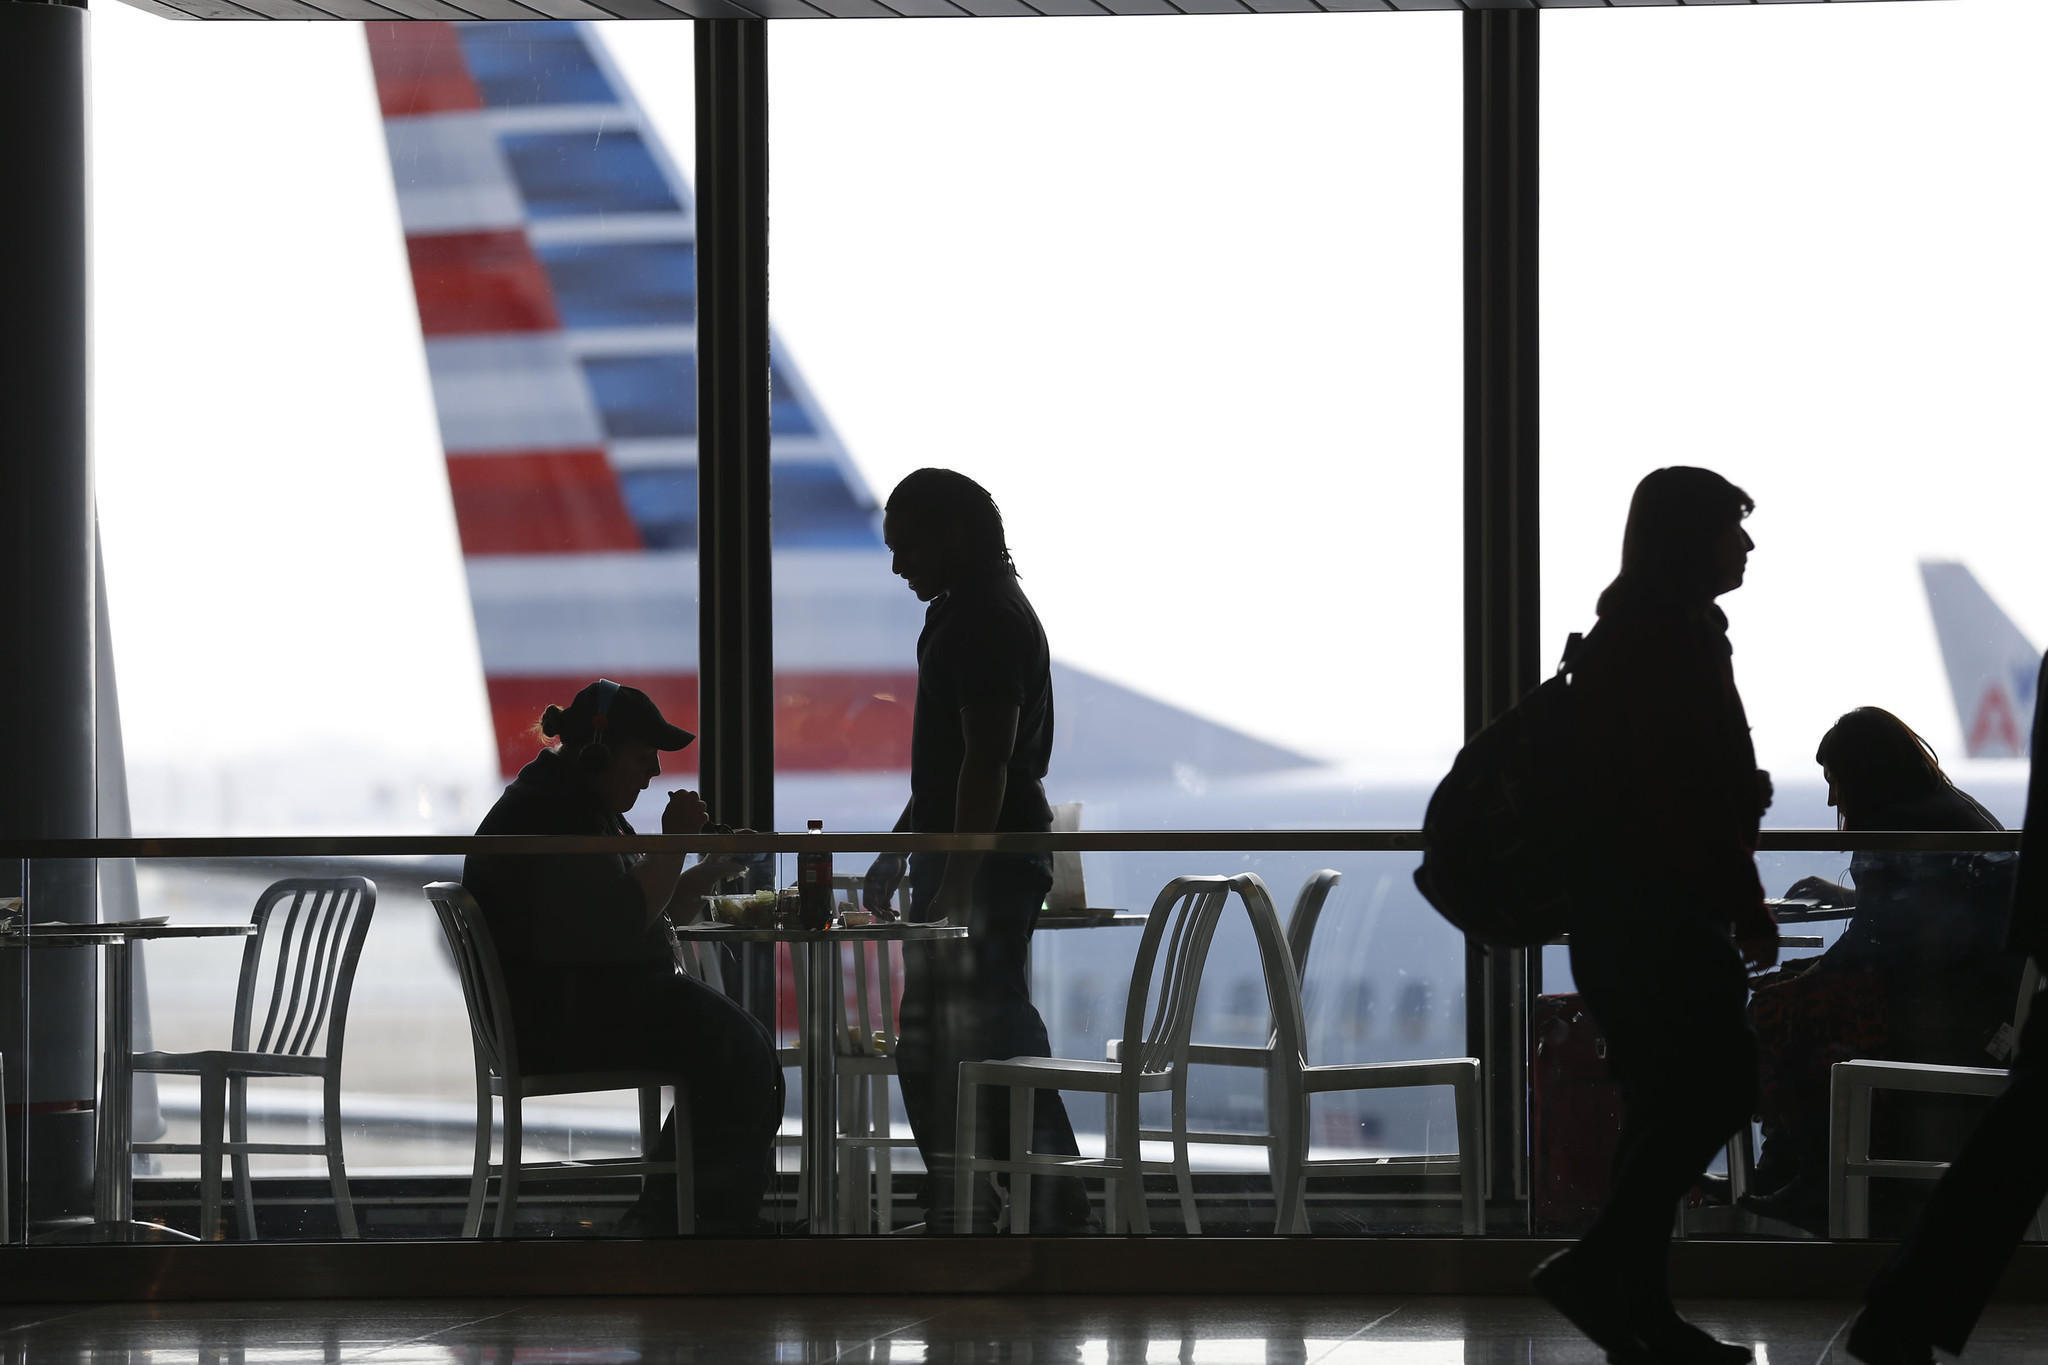 Travelers sit and eat as an American Airlines plane sits in a gate in terminal 3 at Chicago's O'Hare International Airport.